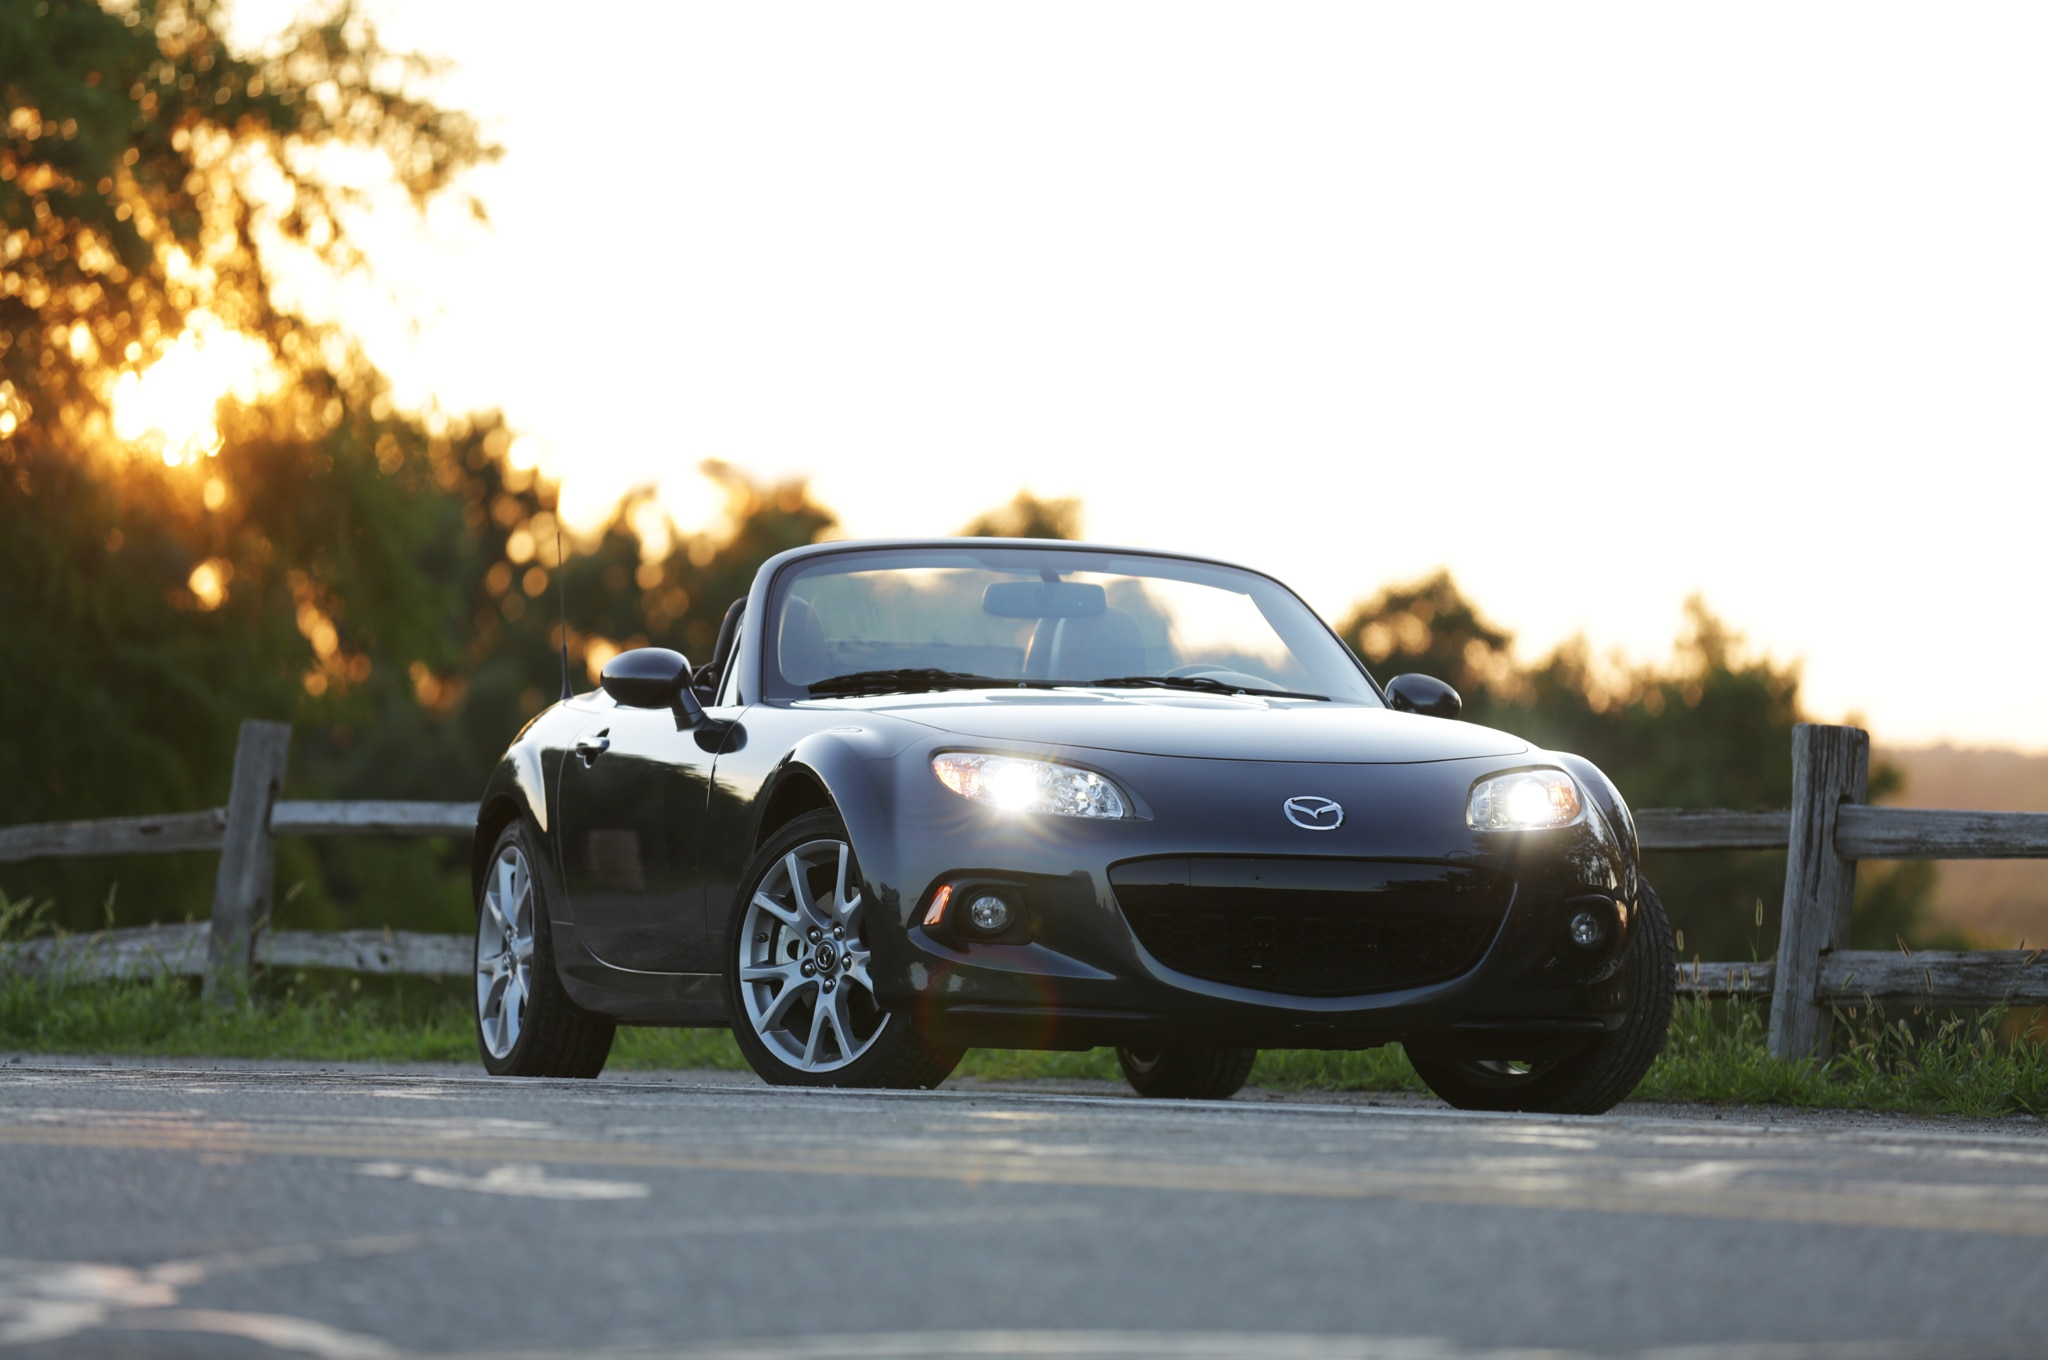 2014 Mazda MX 5 Miata Grand Touring PRHT Front Three Quarters 02